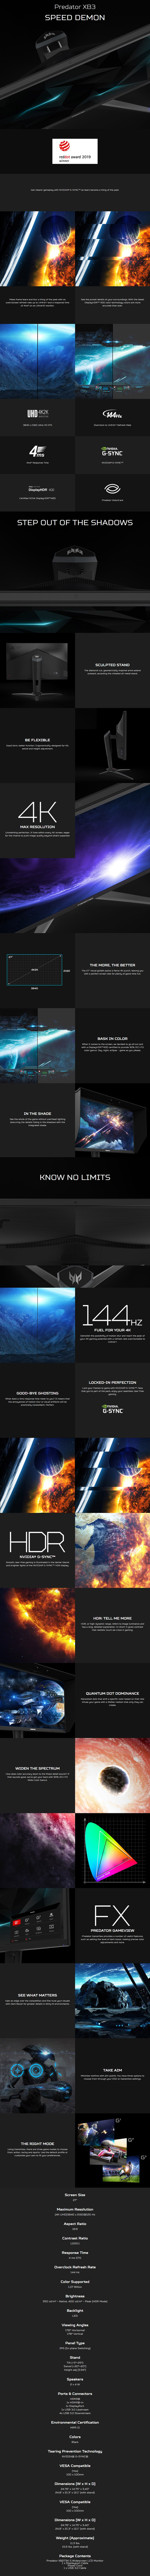 "Acer Predator XB273KS 27"" UHD 144Hz G-Sync IPS Gaming Monitor - Overview 1"